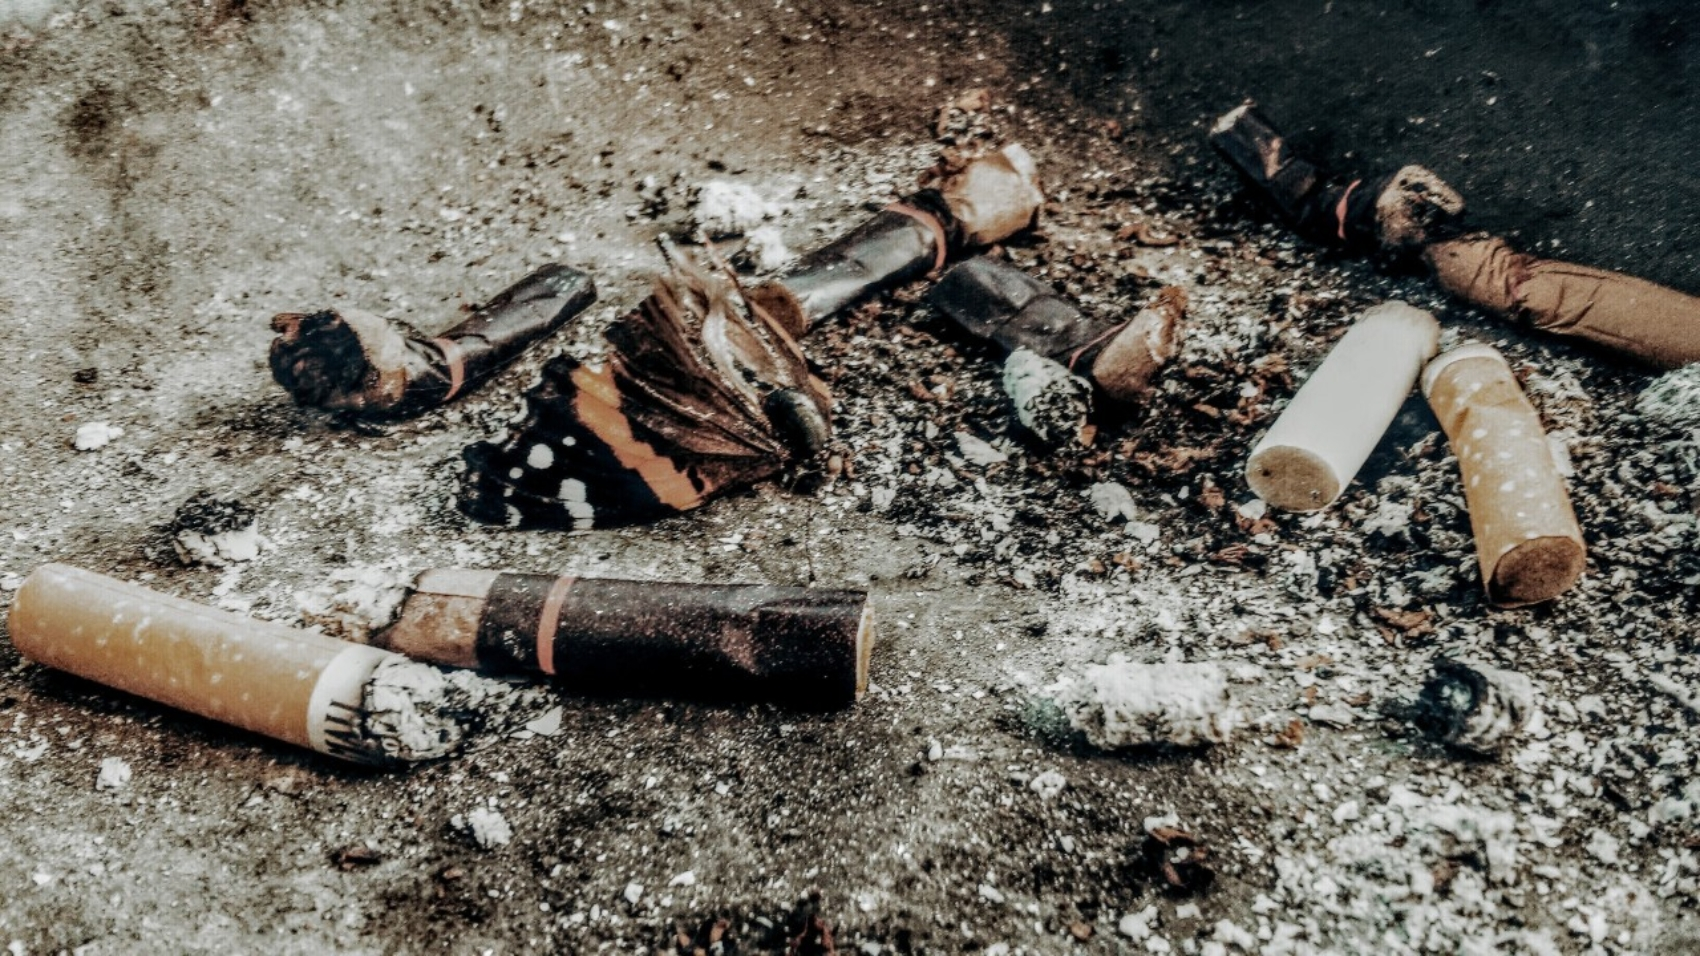 Cigarette butts and ashes symbolize toxic family traits.